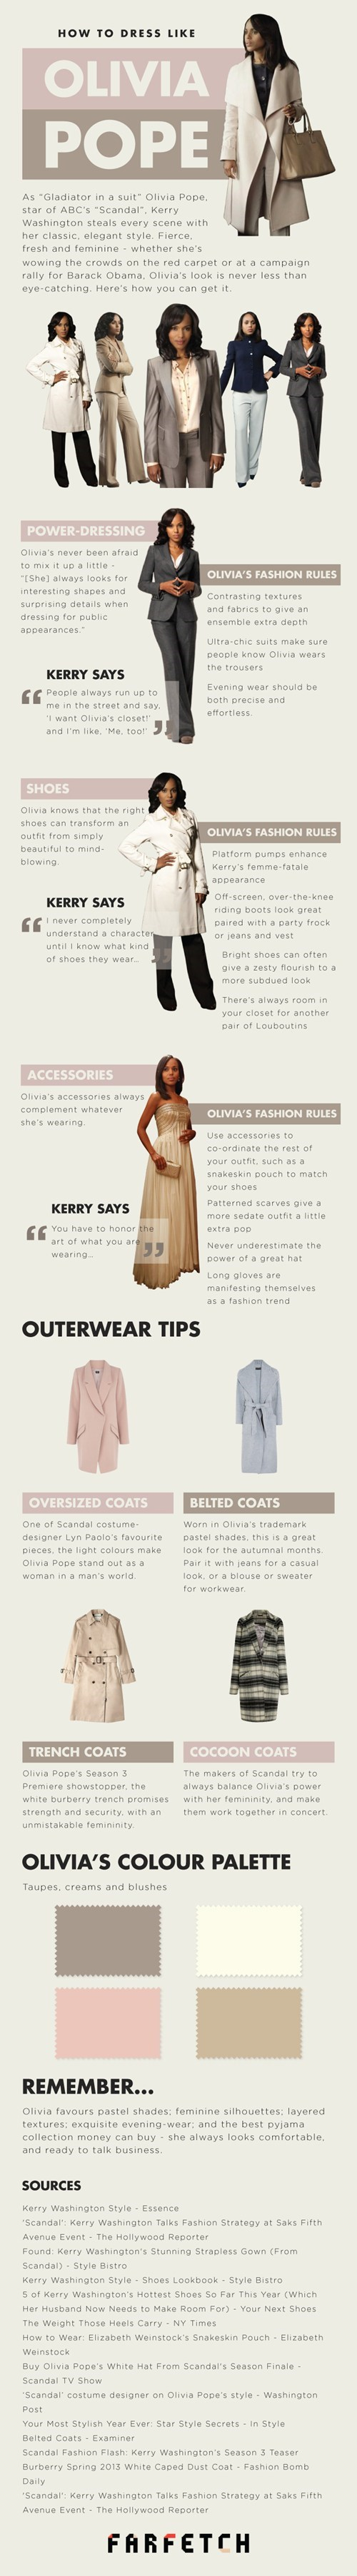 fashion,infographic,scandal,television,Olivia Pope